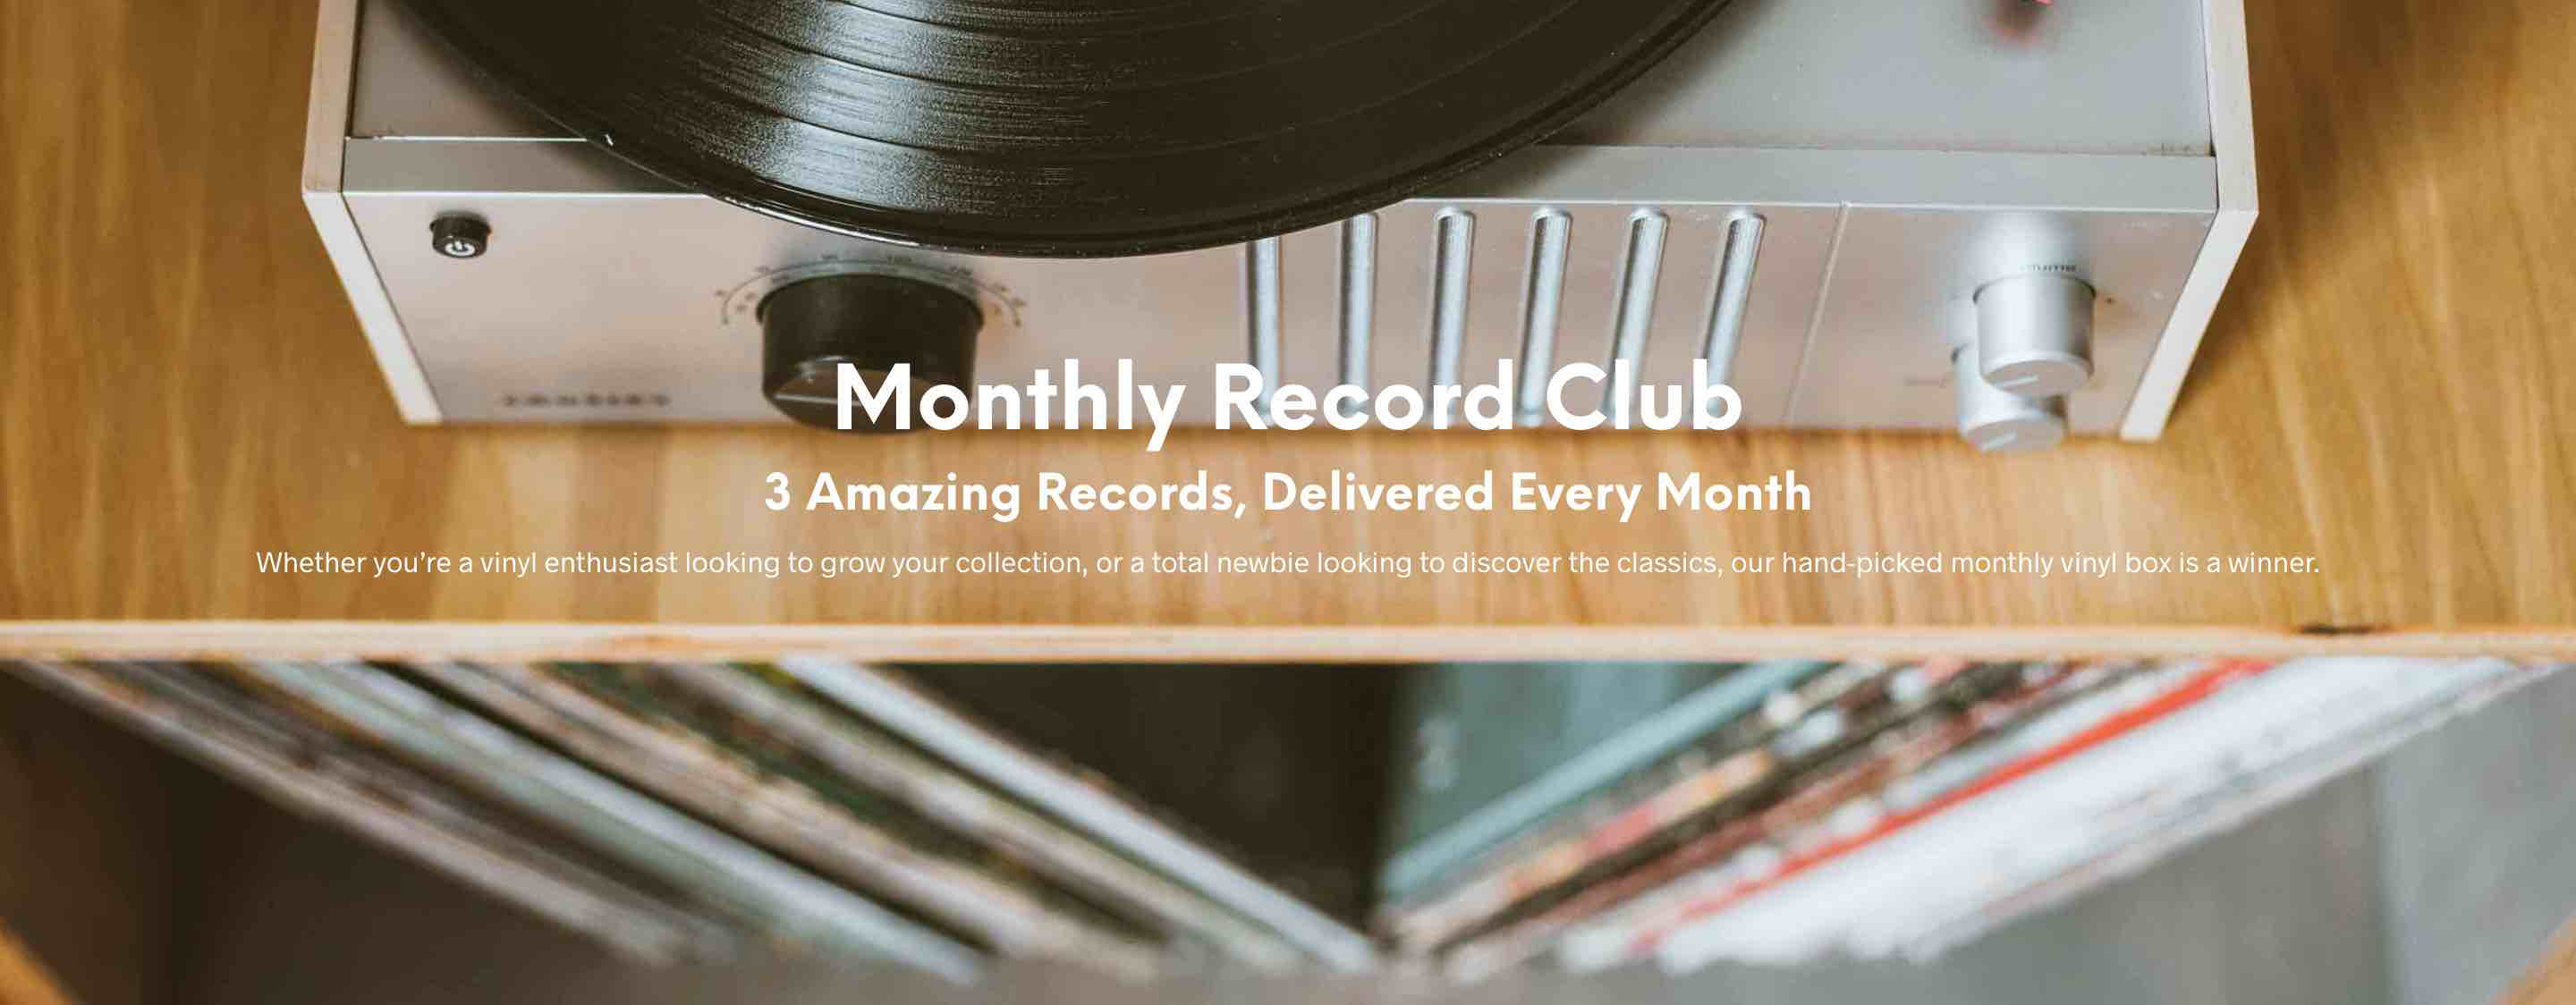 Monthly Record Club 3 Hand Picked Lp S Every Month The